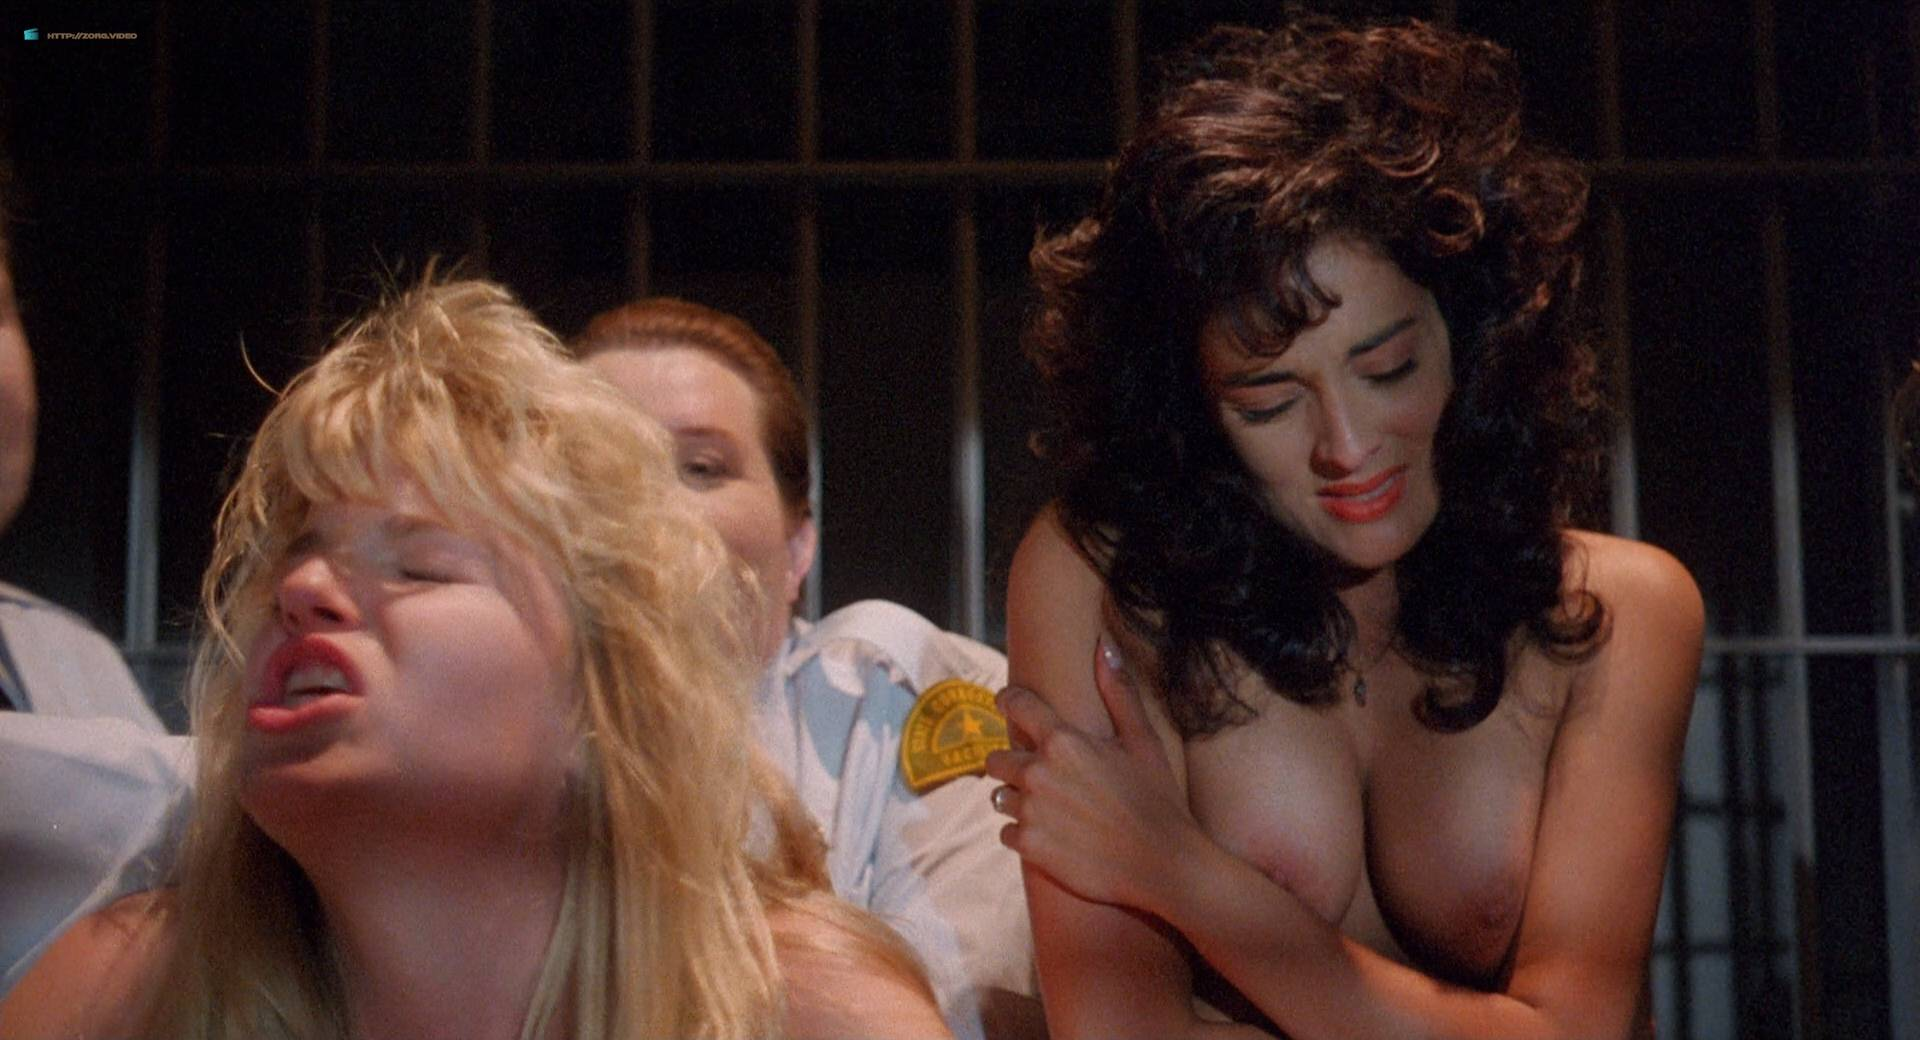 Roxanna Michaels nude Tiffany Million and others nude bush butt - Caged Fury (1989) HD 1080p BluRay (17)